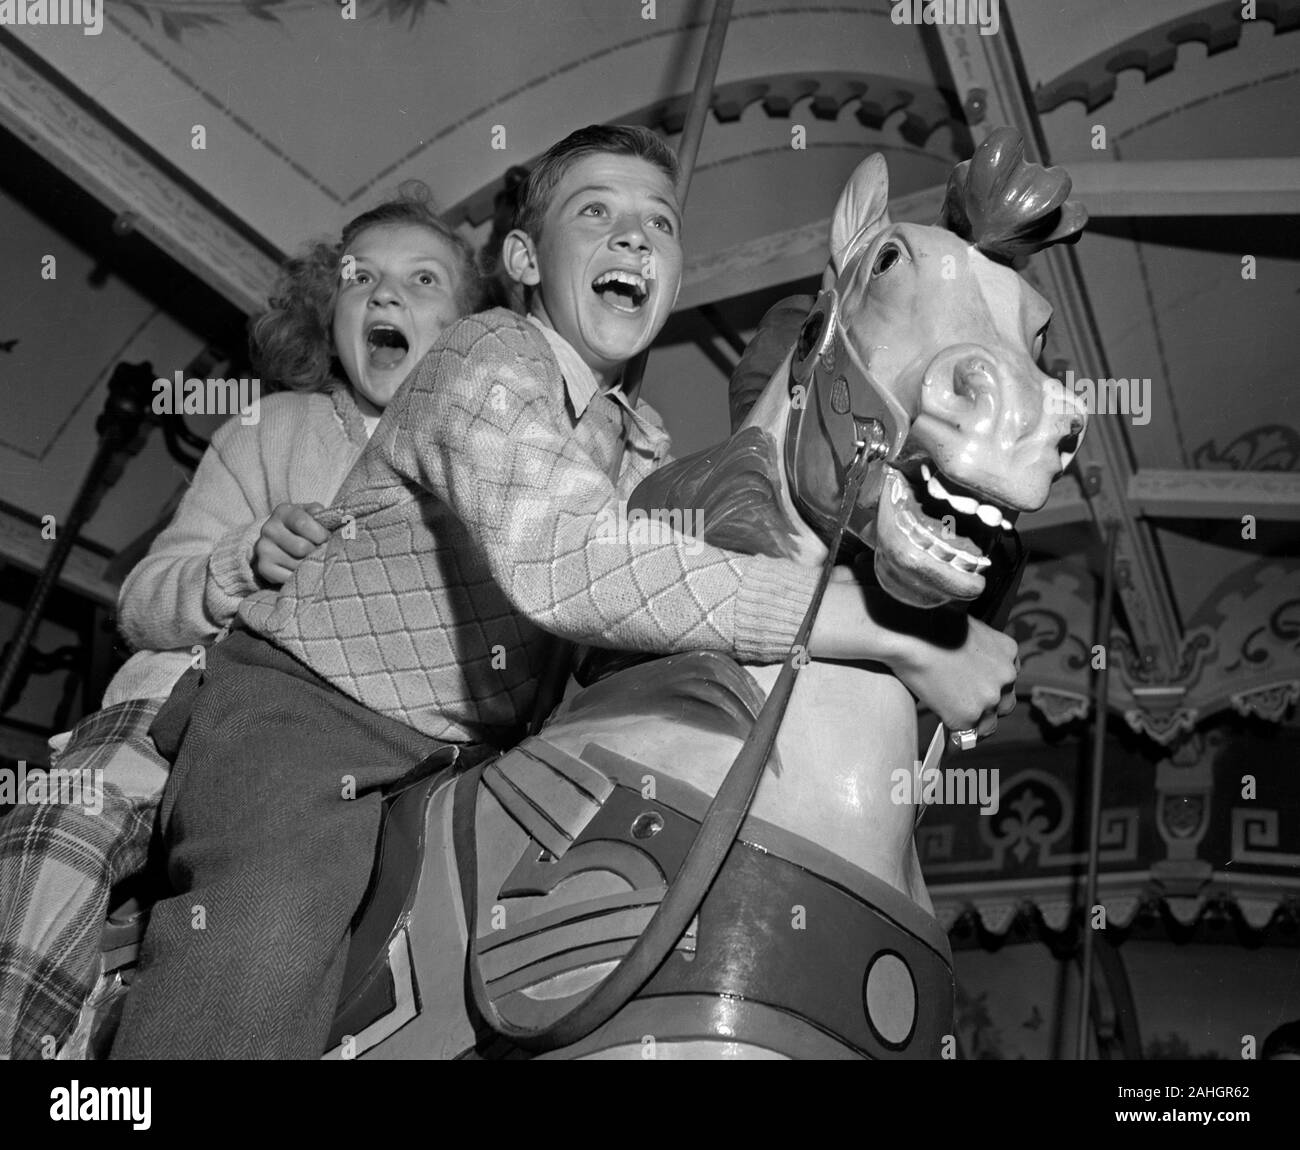 Children on a merry-go-round 1946 Stock Photo